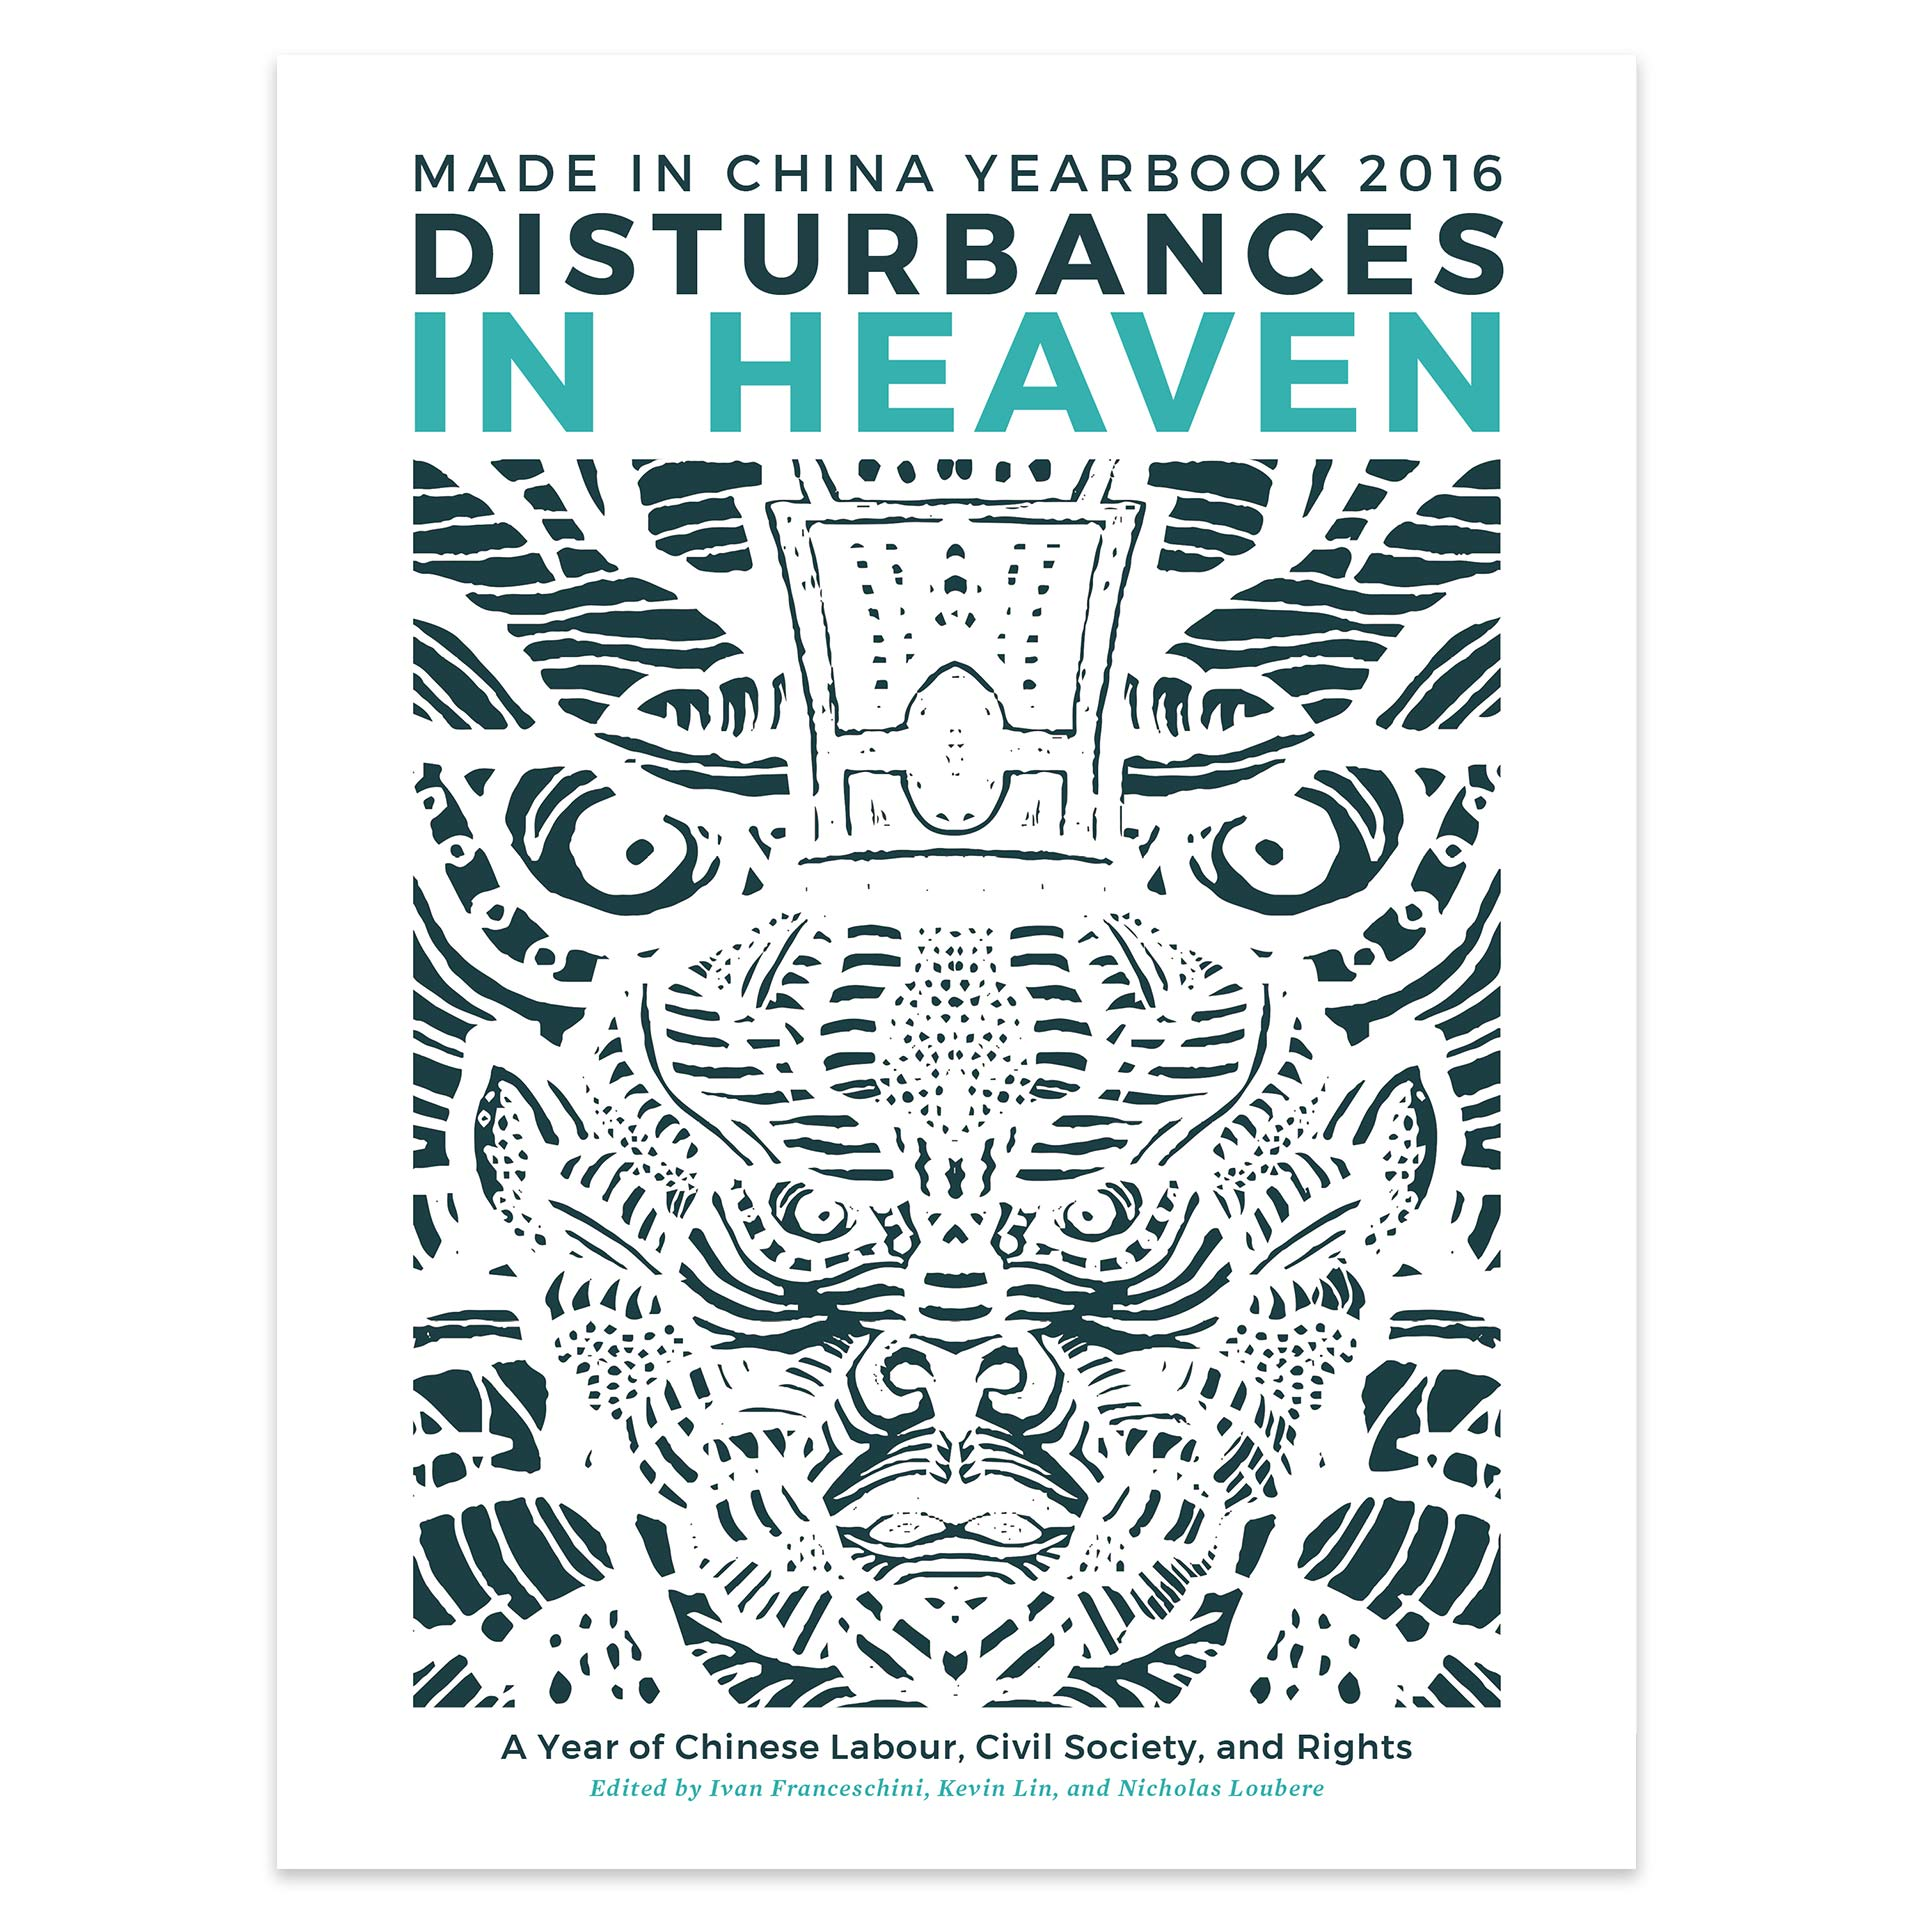 Made in China Yearbook 2016: Disturbances in Heaven